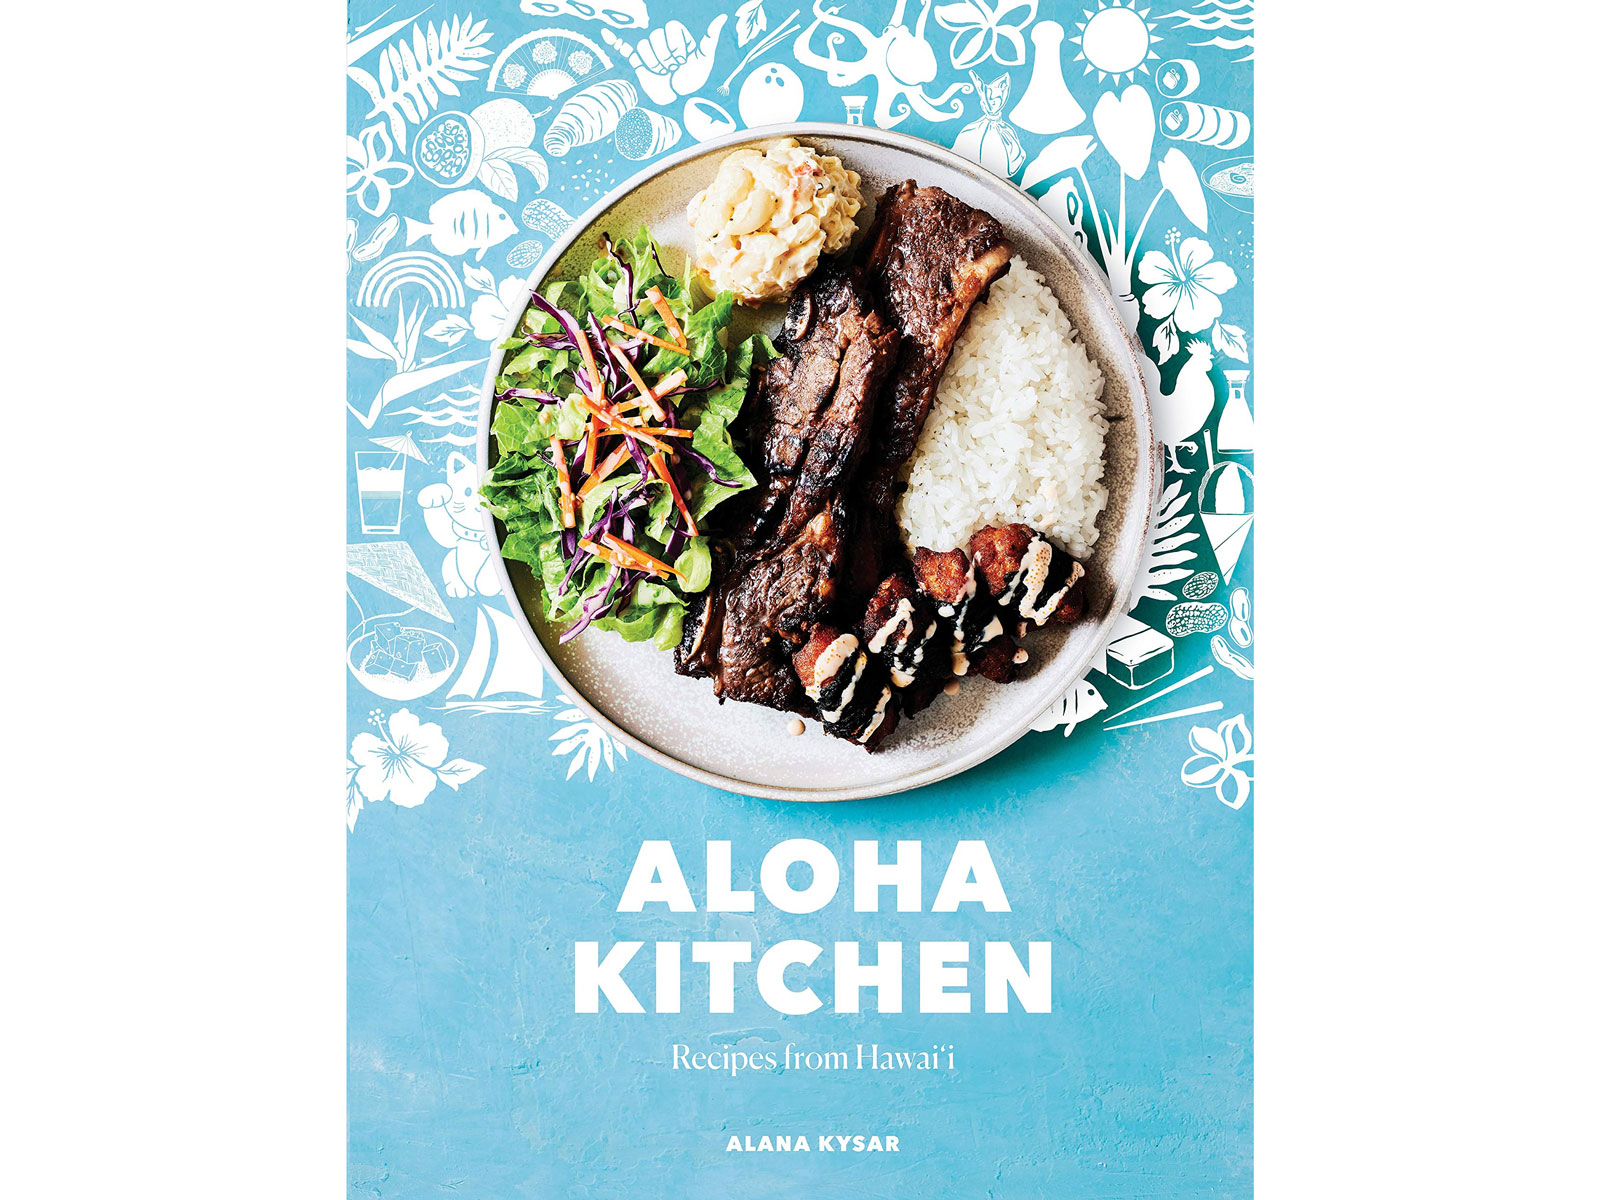 Aloha Kitchen: Recipes from Hawai'i by Alana Kysar